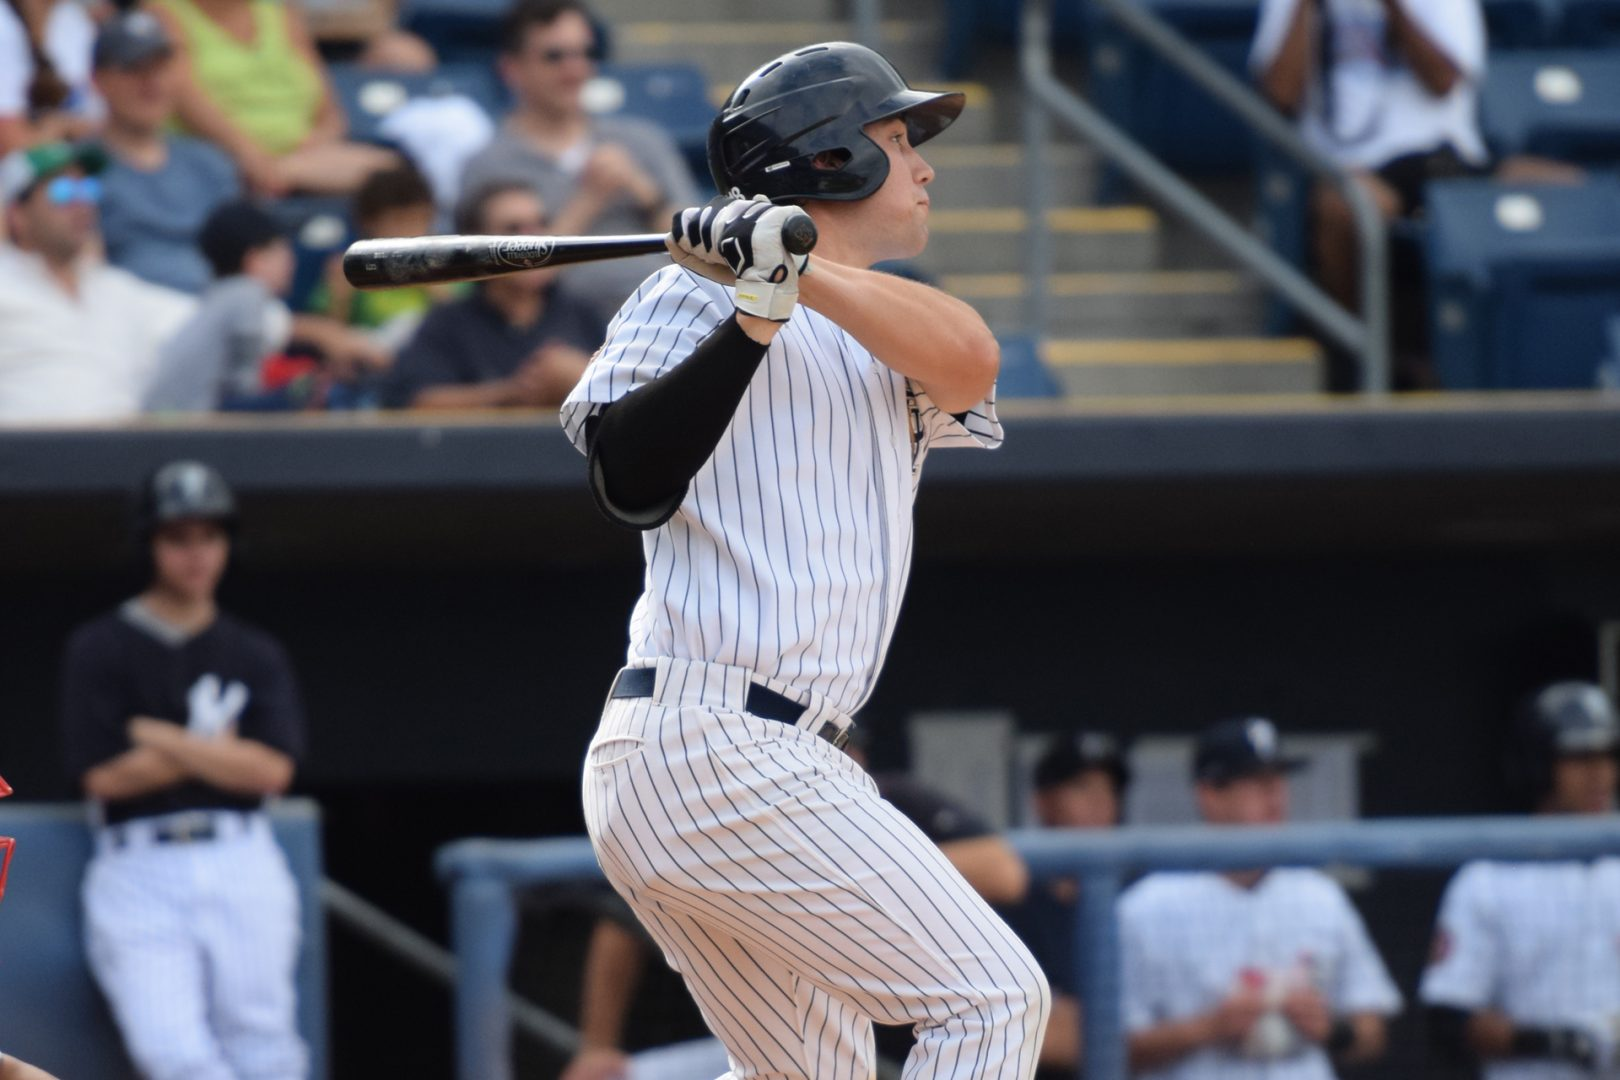 Drew Bridges singled to start off the fourth inning for the Staten Island Yankees (Robert M. Pimpsner)